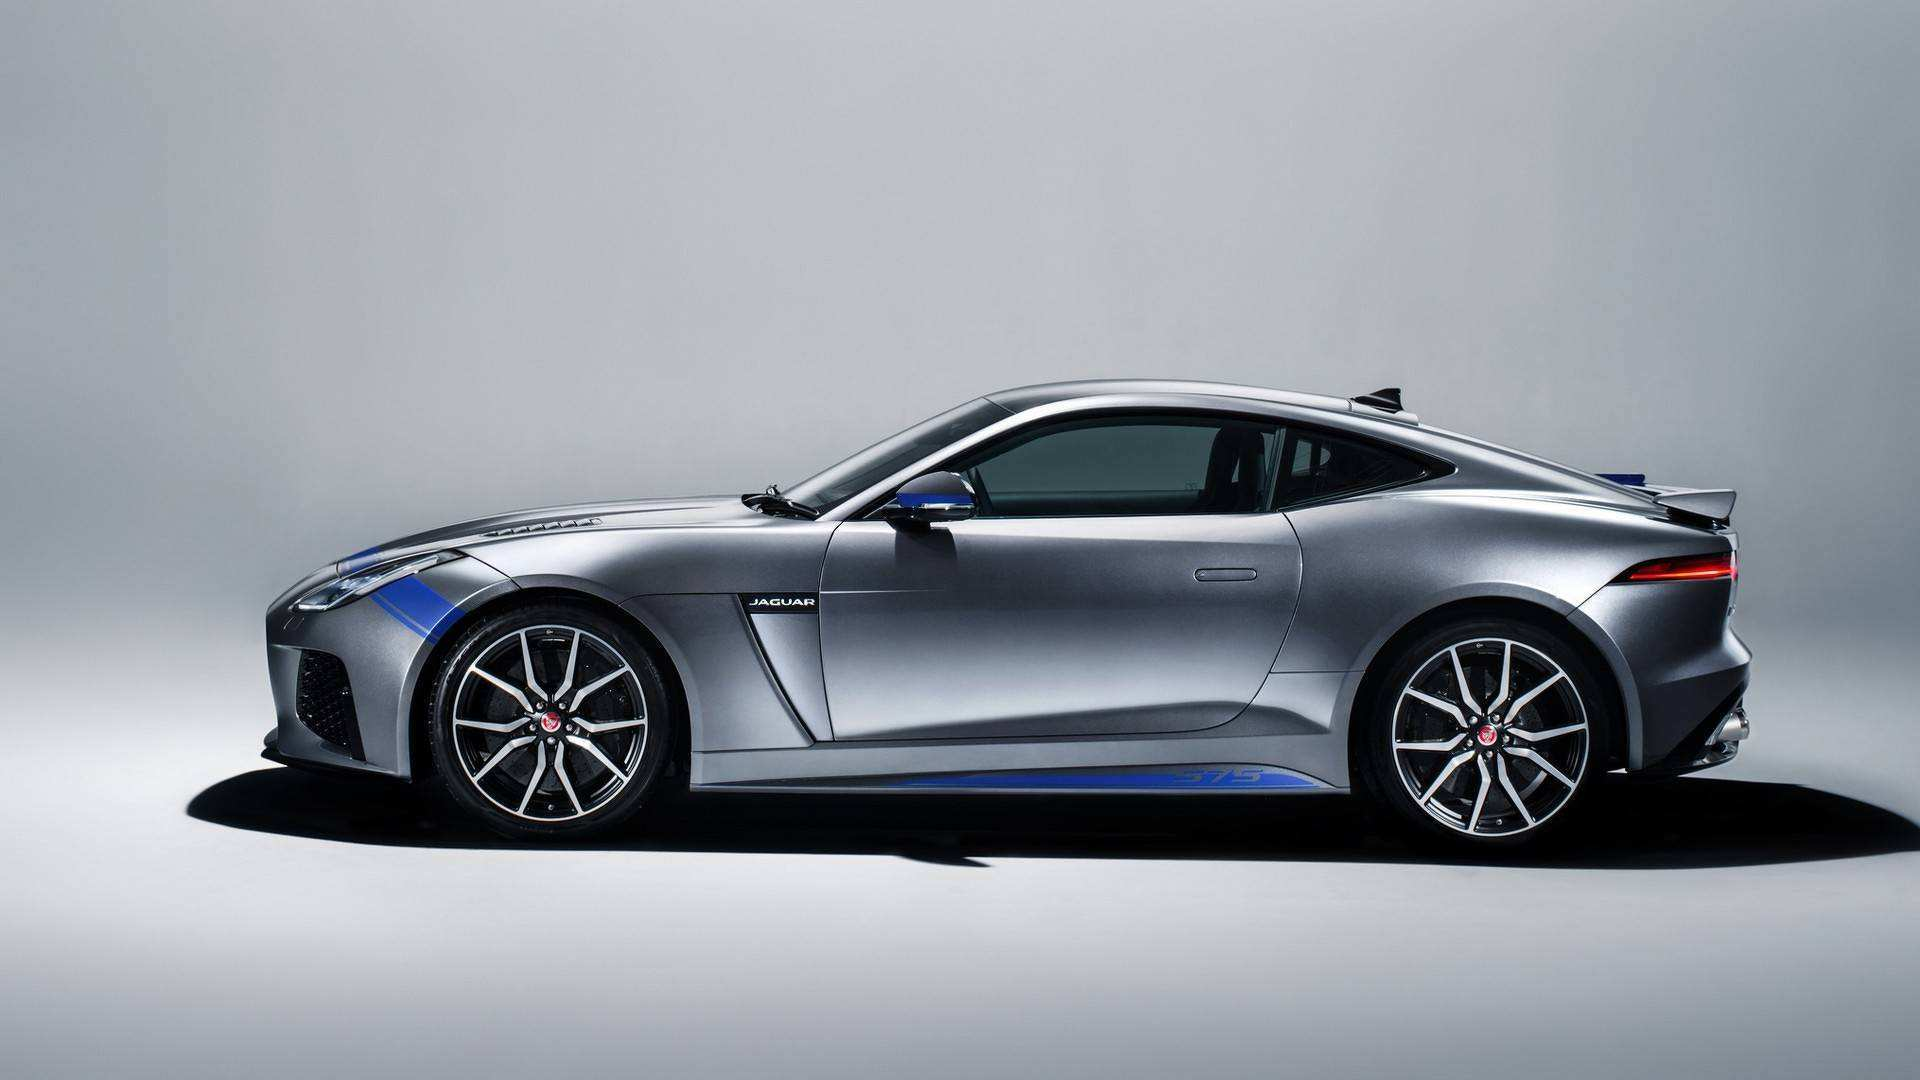 21 Concept of Jaguar F Type 2020 New Concept Images with Jaguar F Type 2020 New Concept